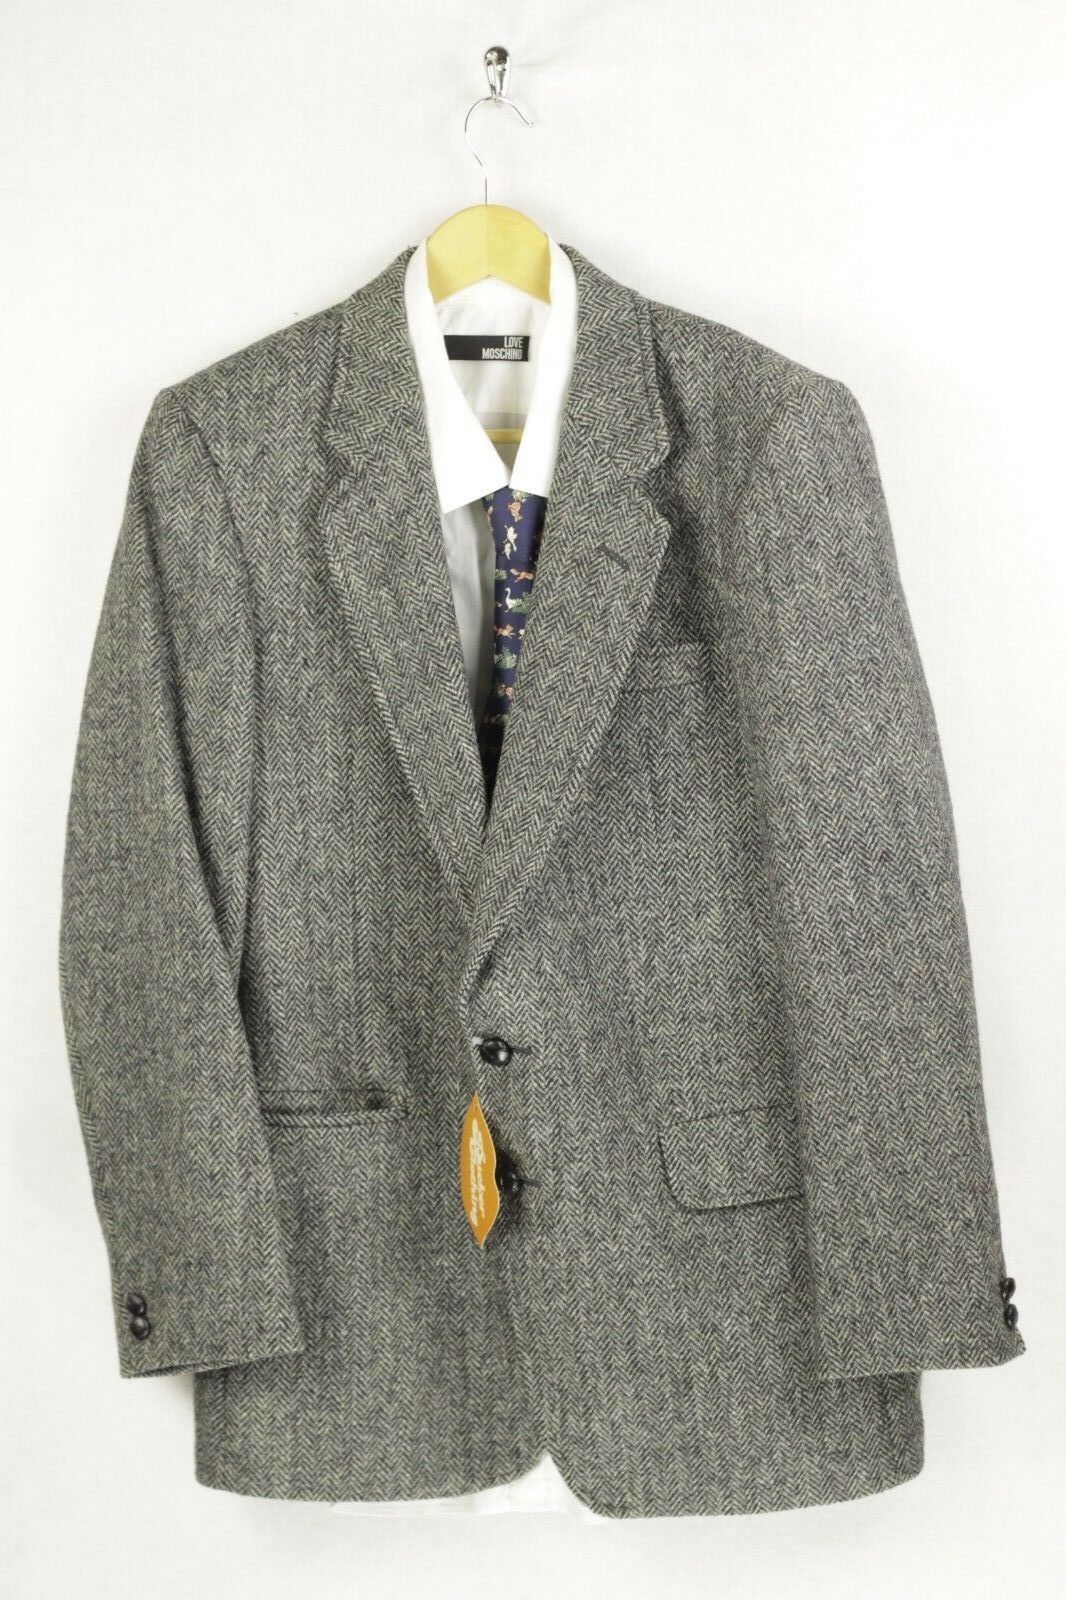 VINTAGE Mens HARRIS TWEED Country Jacket Blazer HAND WOVEN 42 EXCELLENT DN2RL